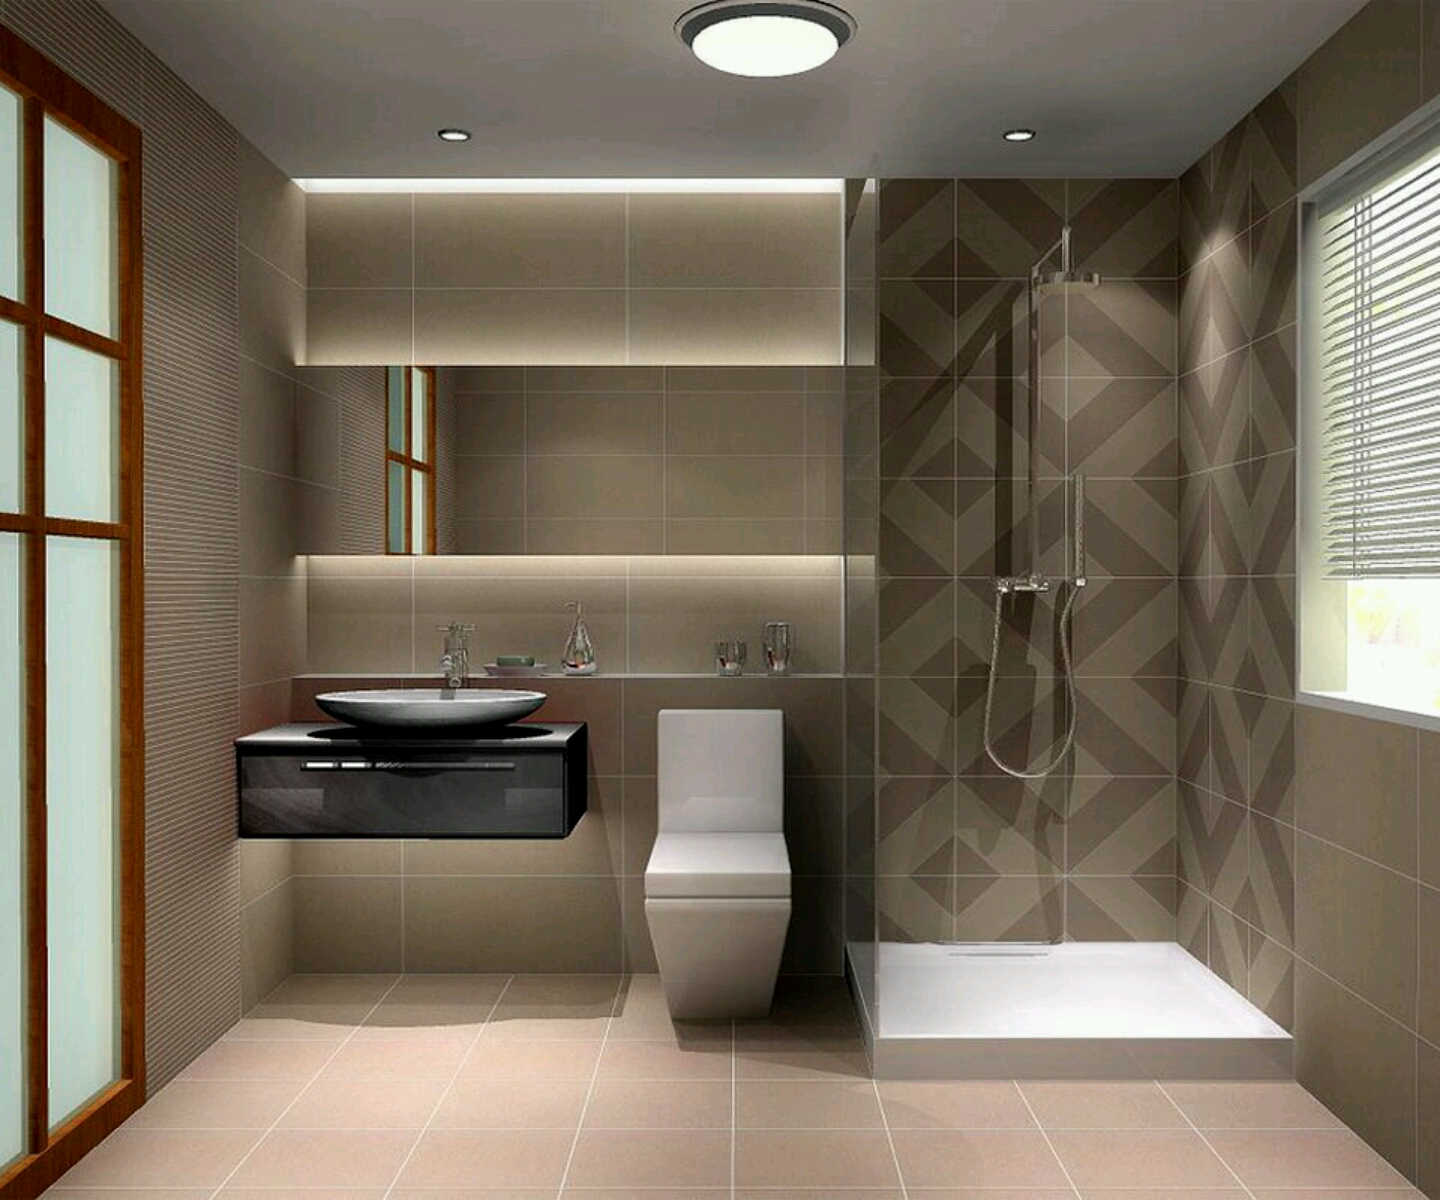 Small modern bathroom design 2017 grasscloth wallpaper for Small bathroom design modern